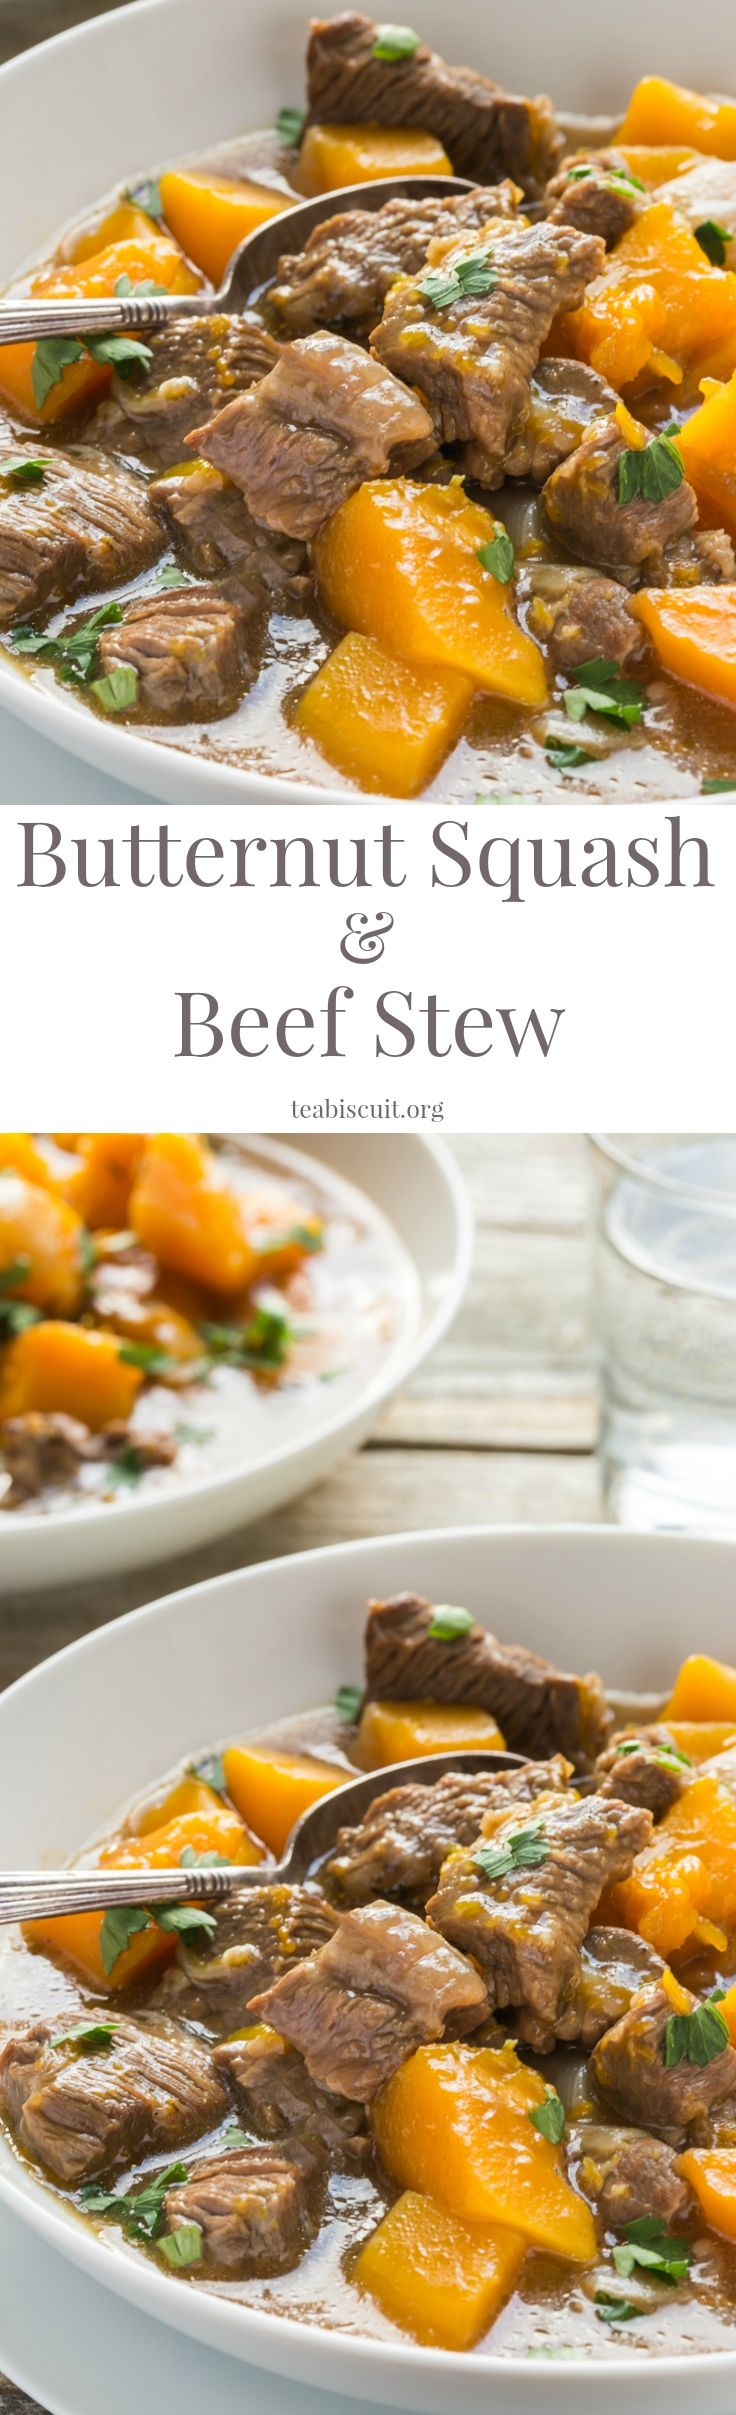 This Beef and Butternut Squash Stew is so easy to cook! Made from scratch in one pot with simple ingredients, it's a great tasting meal that your whole family will love!| low carb | paleo | gluten free | primal | teabiscuit.org